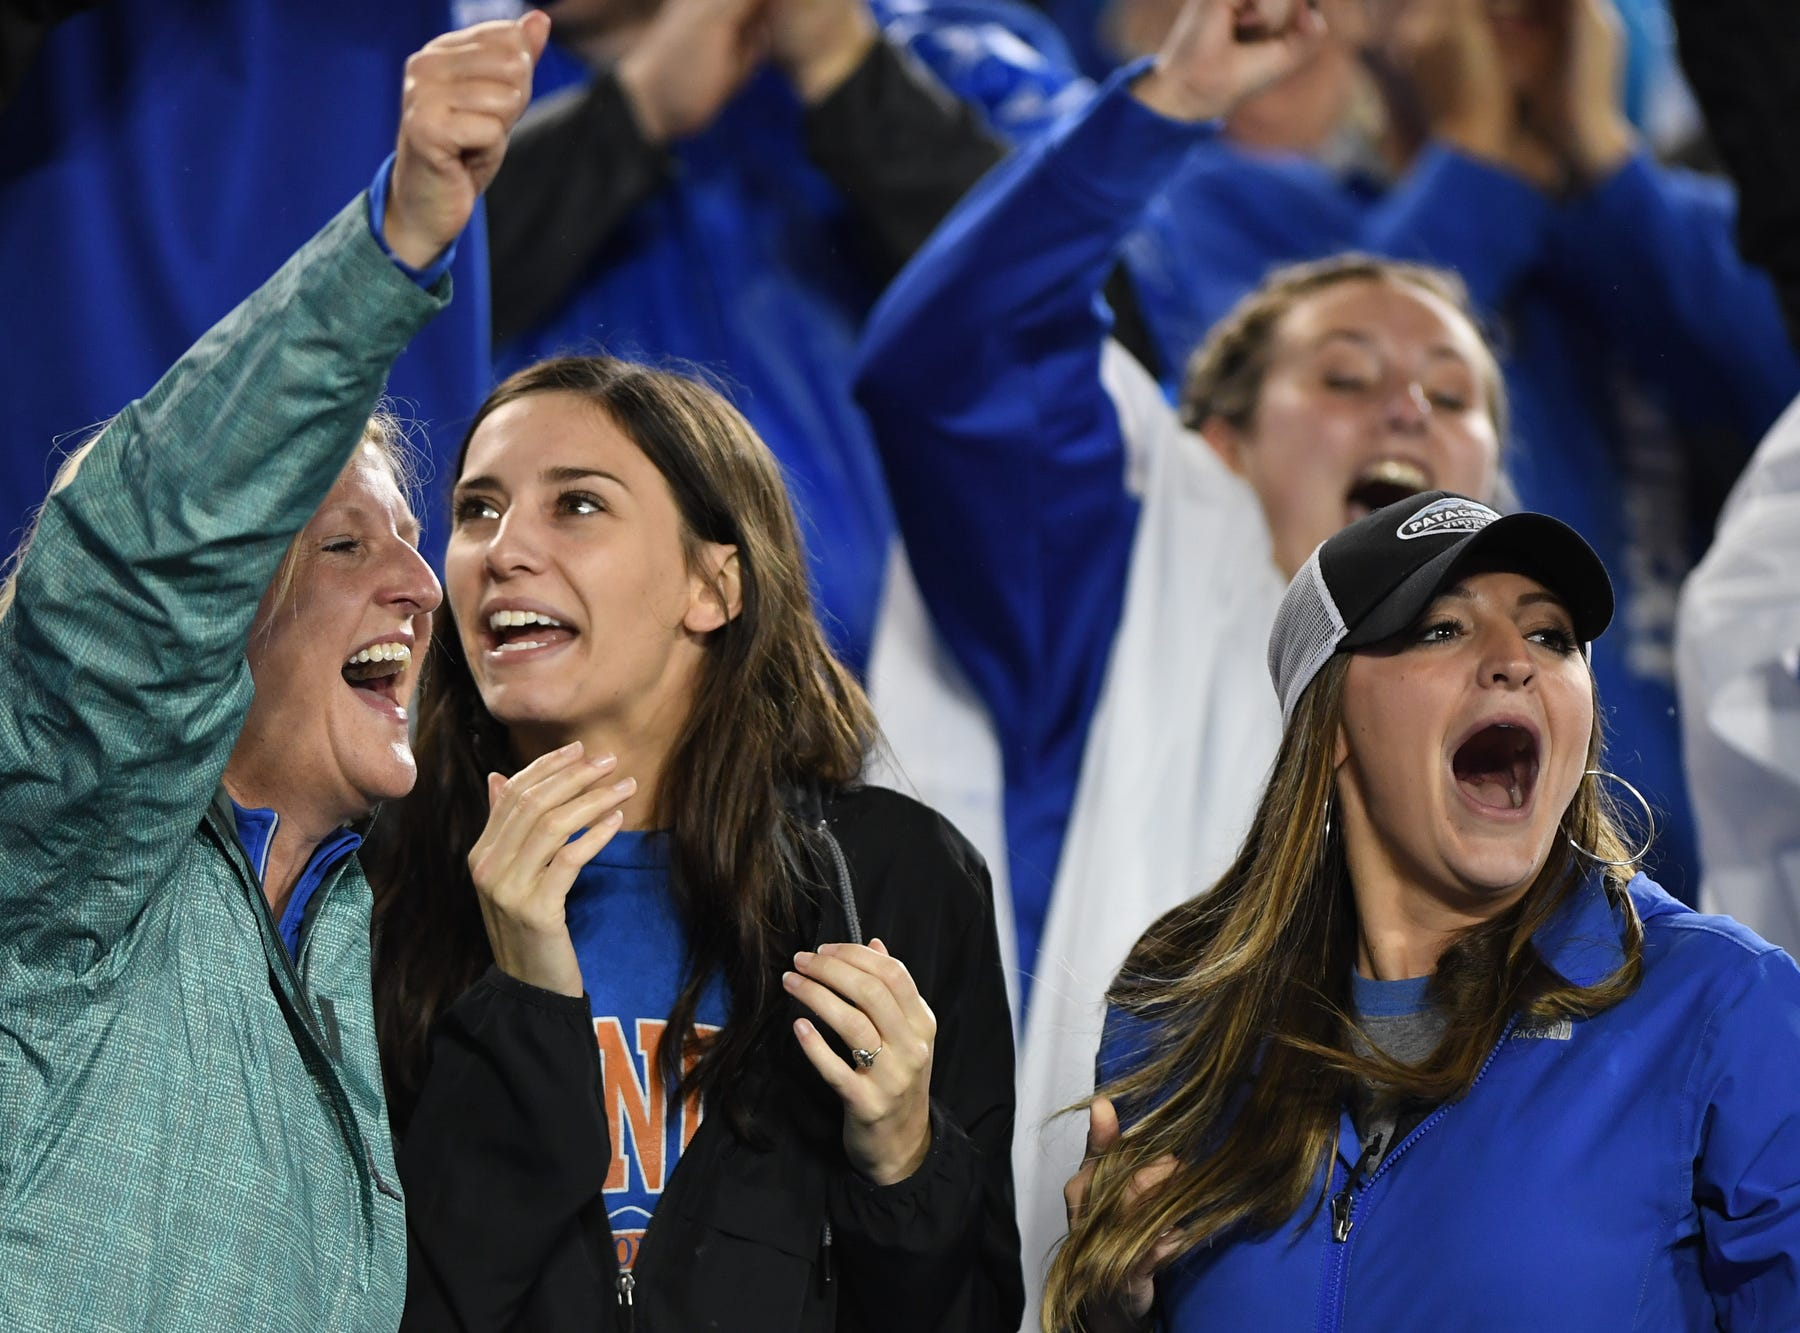 UK fans during the University of Kentucky football game against Mississippi State at Kroger Field in Lexington, Kentucky on Saturday, September 22, 2018.